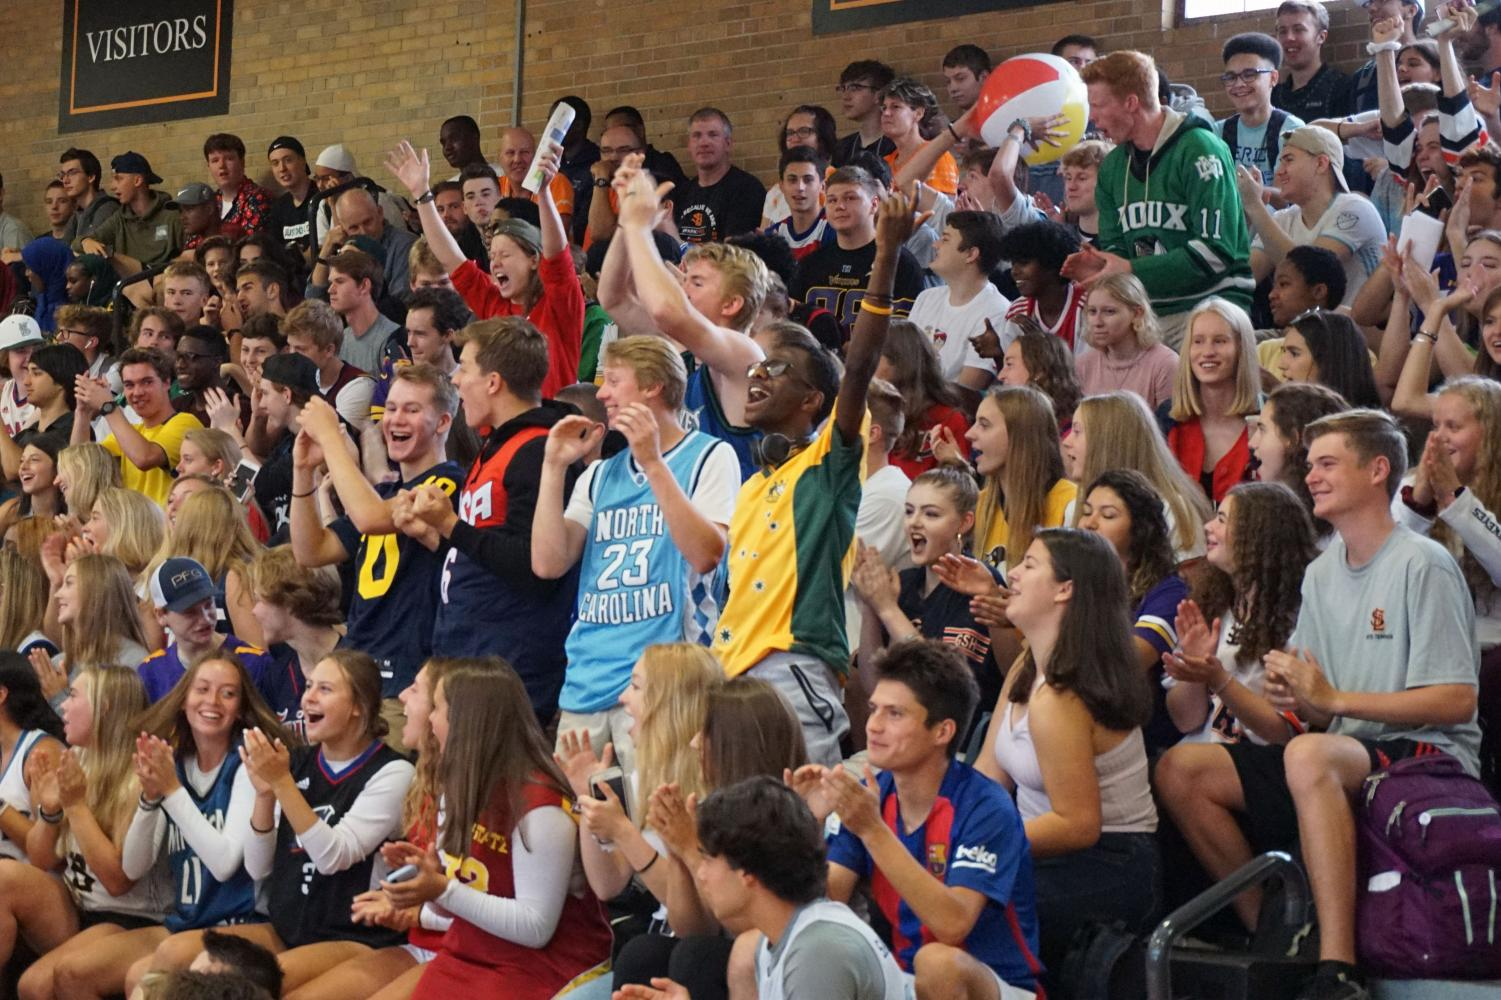 The+senior+class+stands+and+cheers+with+excitement+at+the+first+day+of+school+Pep+fest+Sept.+3.+The+class+wore+jerseys+to+show+their+senior+pride.